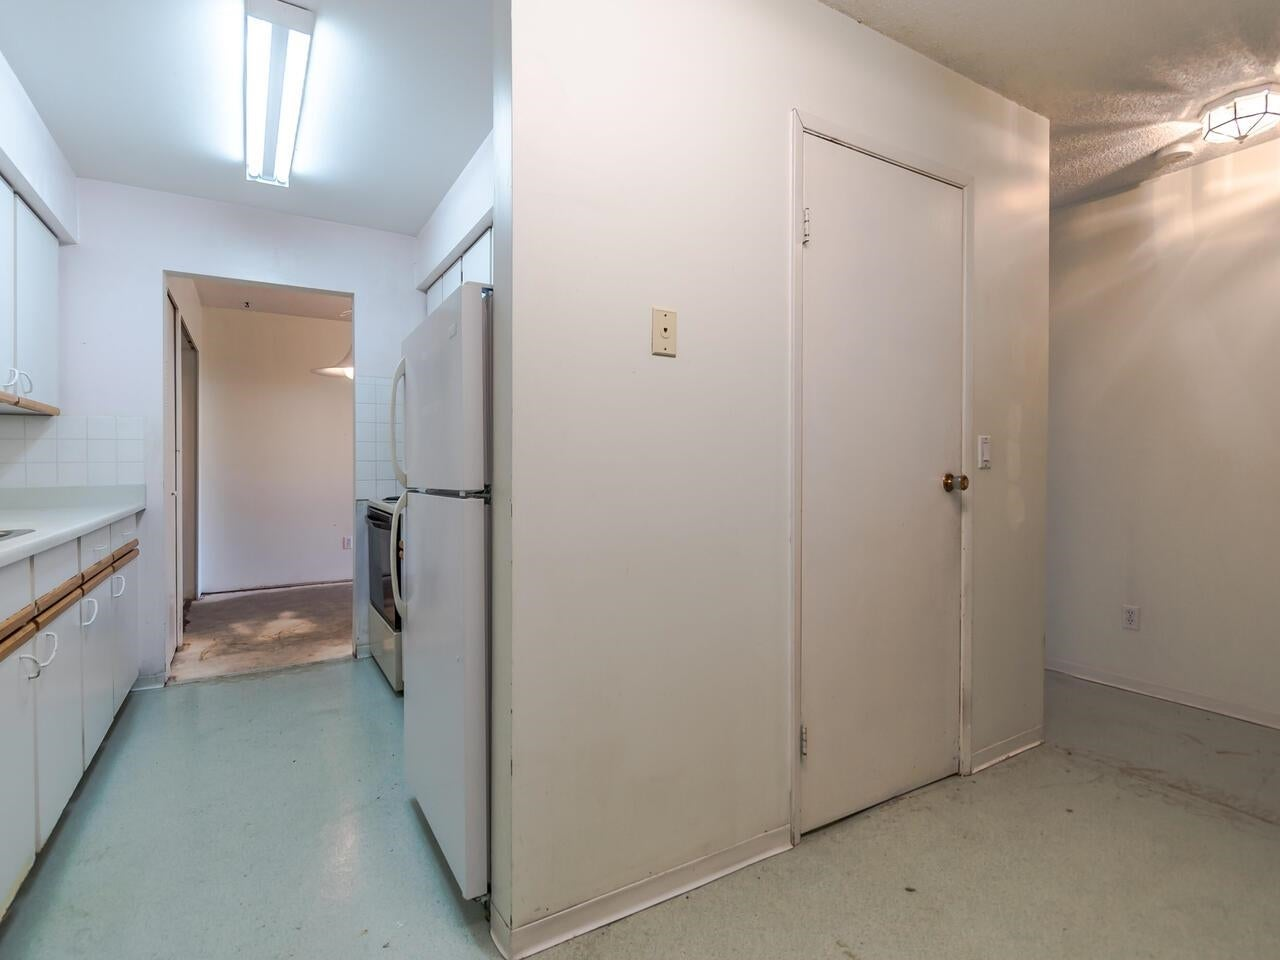 107 5191 203 STREET - Langley City Apartment/Condo for sale, 2 Bedrooms (R2625712) - #8